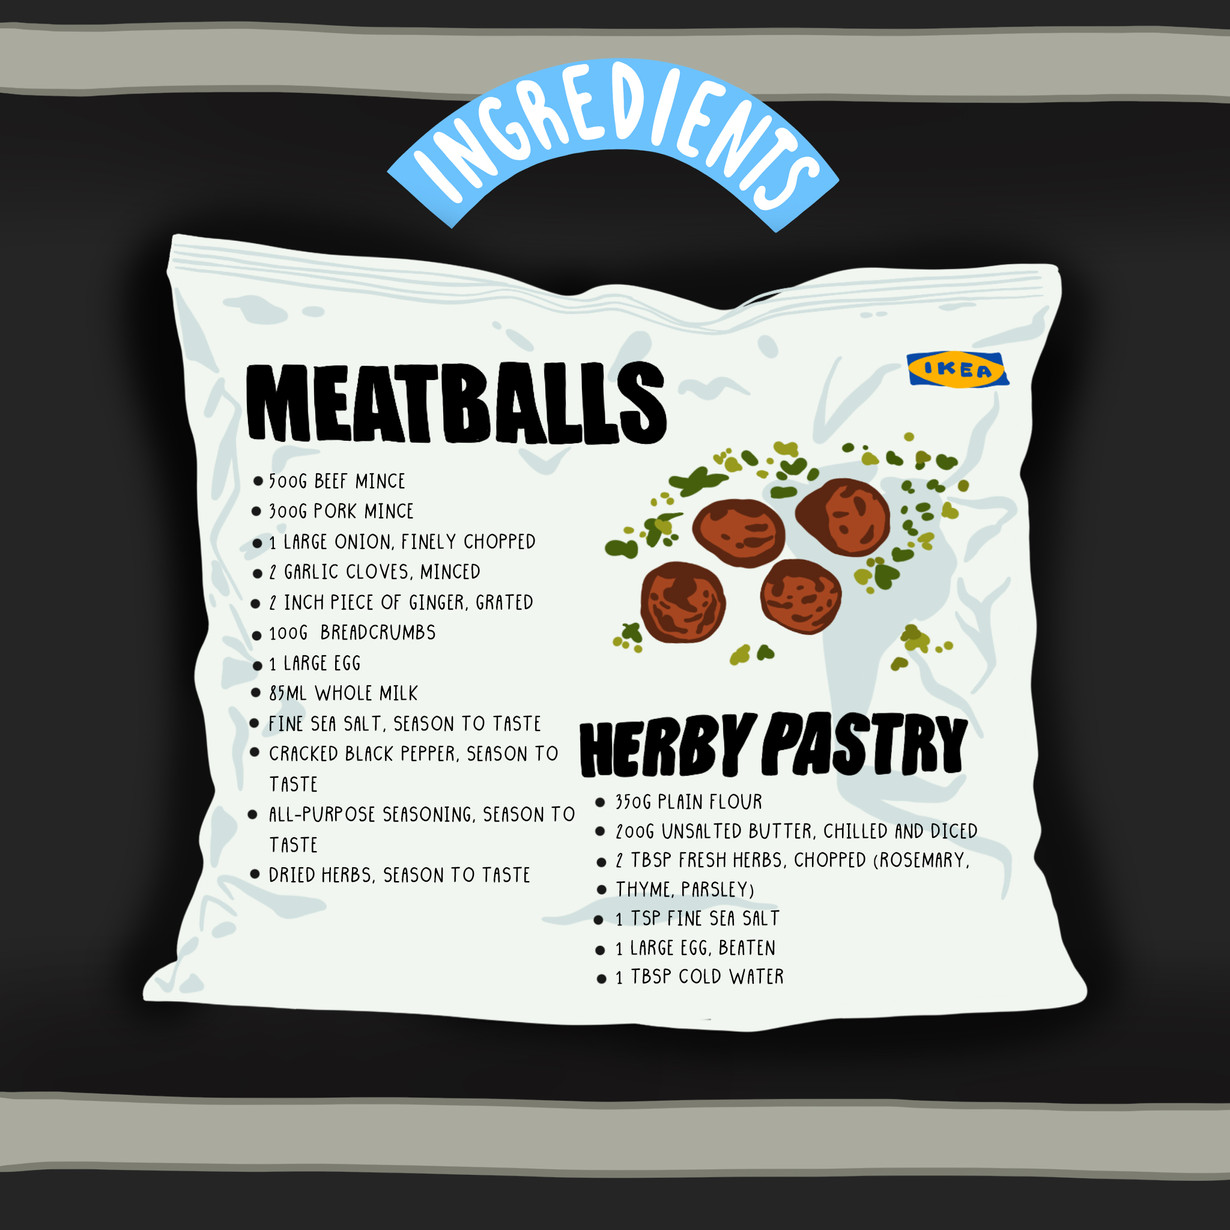 MEATBALLS AND HERBY PASTRY.jpg